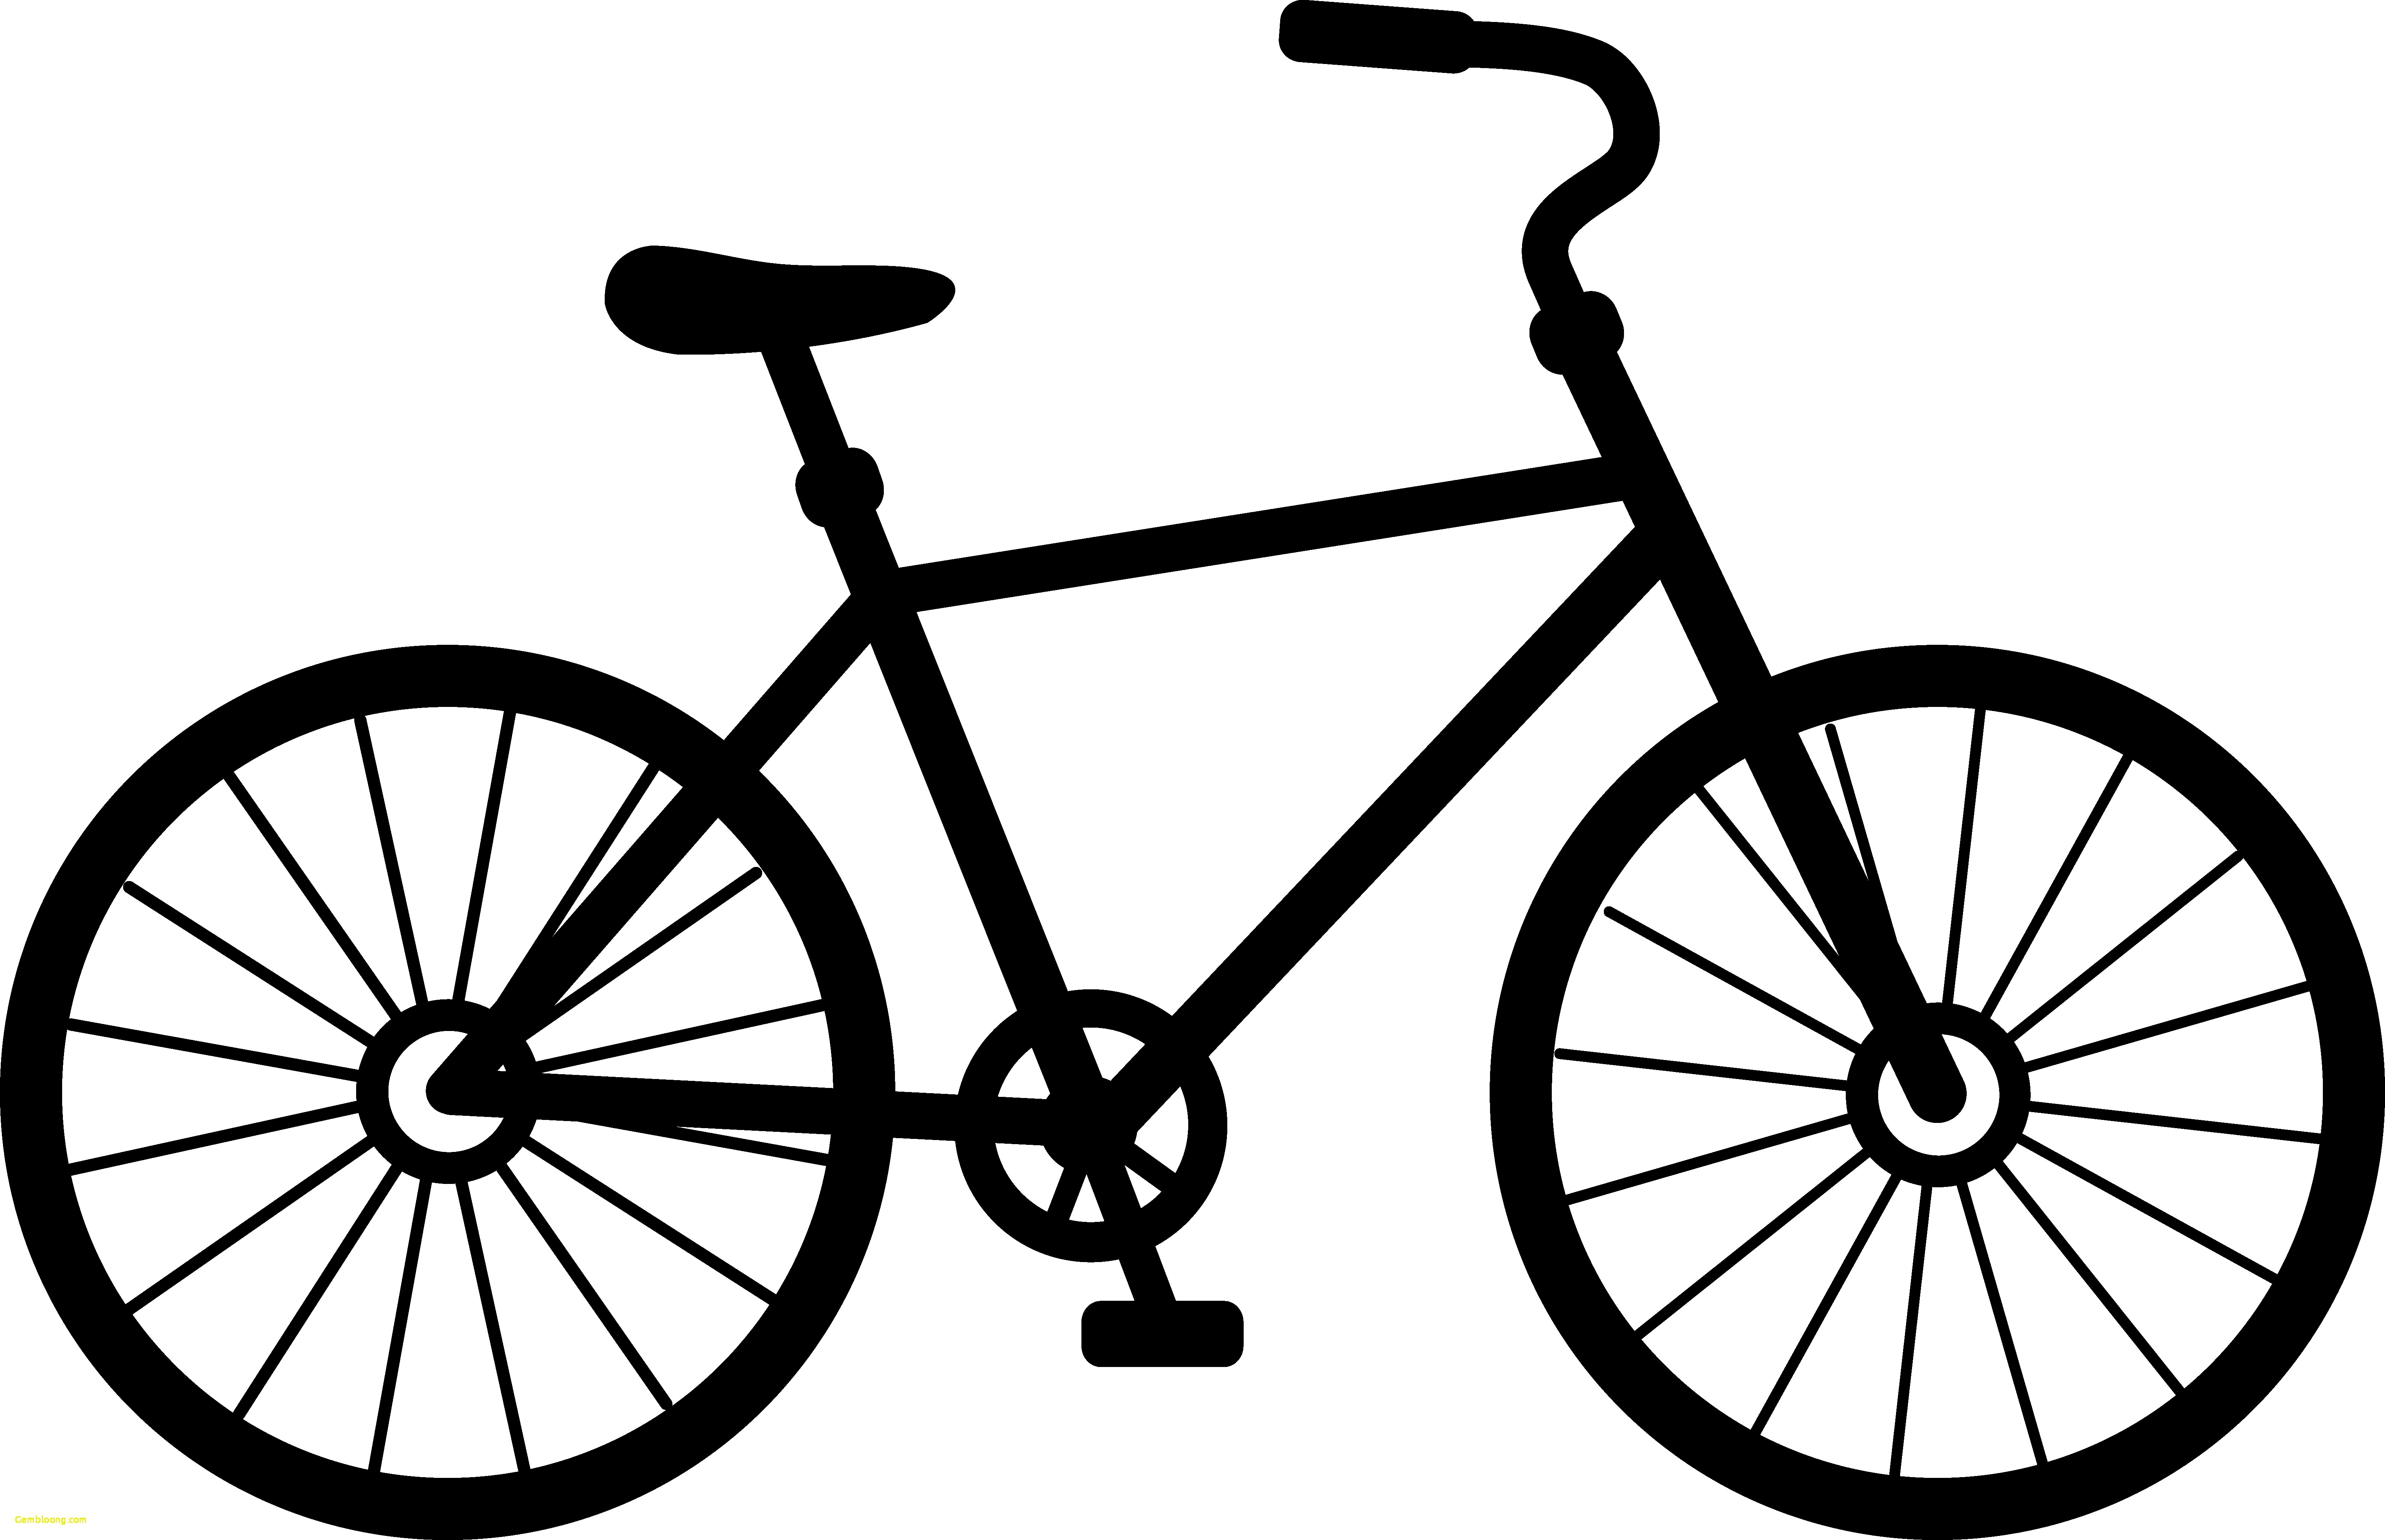 bicycle clip art silhouette at getdrawings com free for personal rh getdrawings com biker clip art free downloads bike clipart older woman